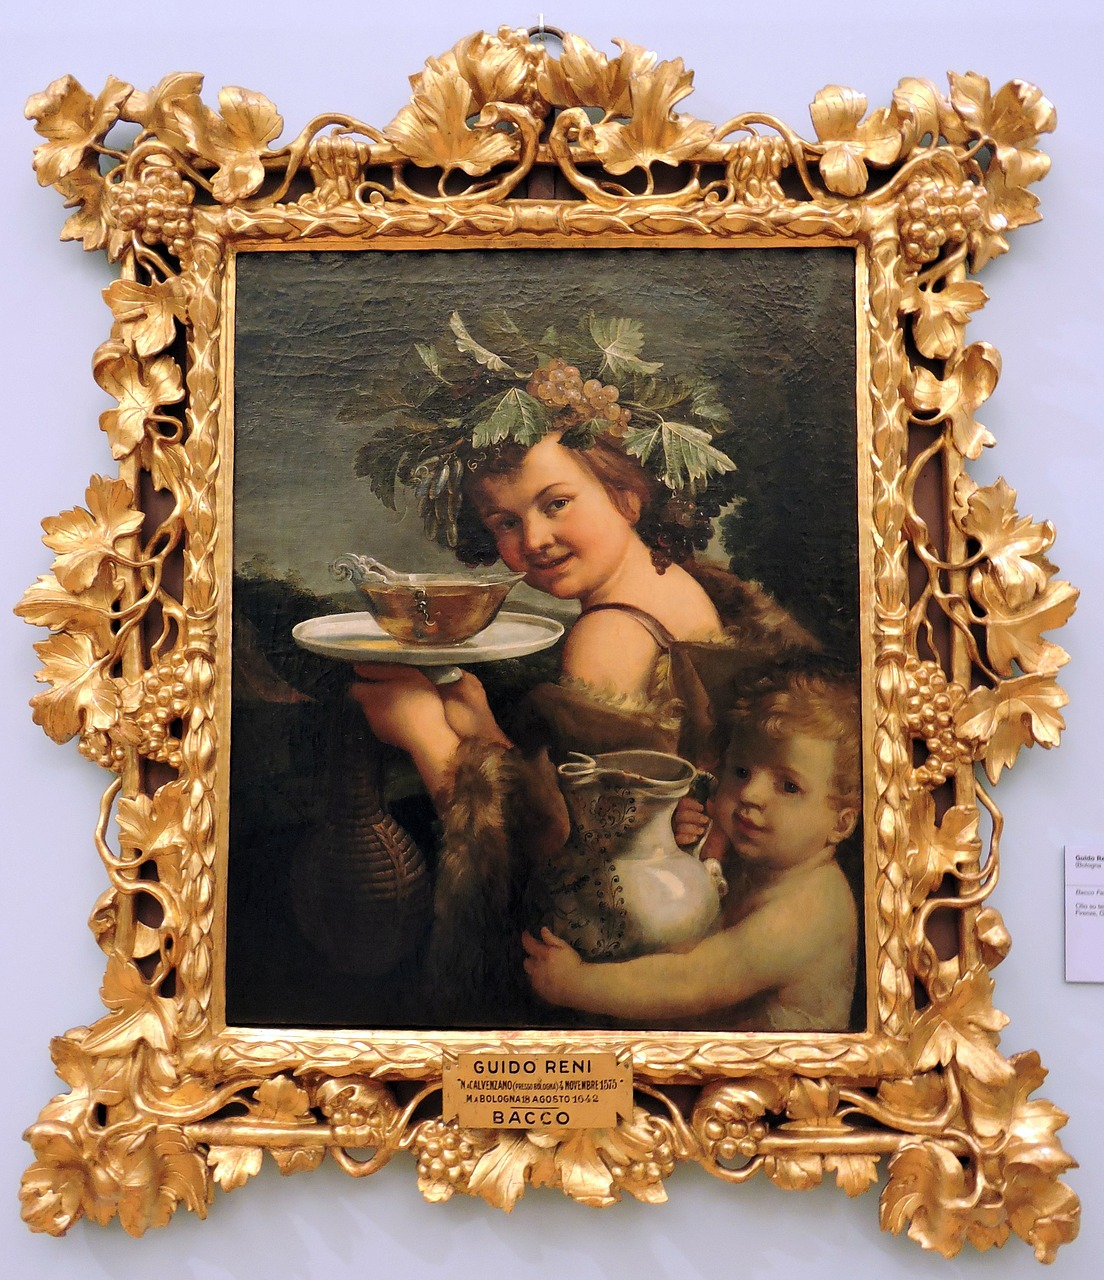 Download free photo of Bacchus,child,the framework,guido reni,florence - from needpix.com